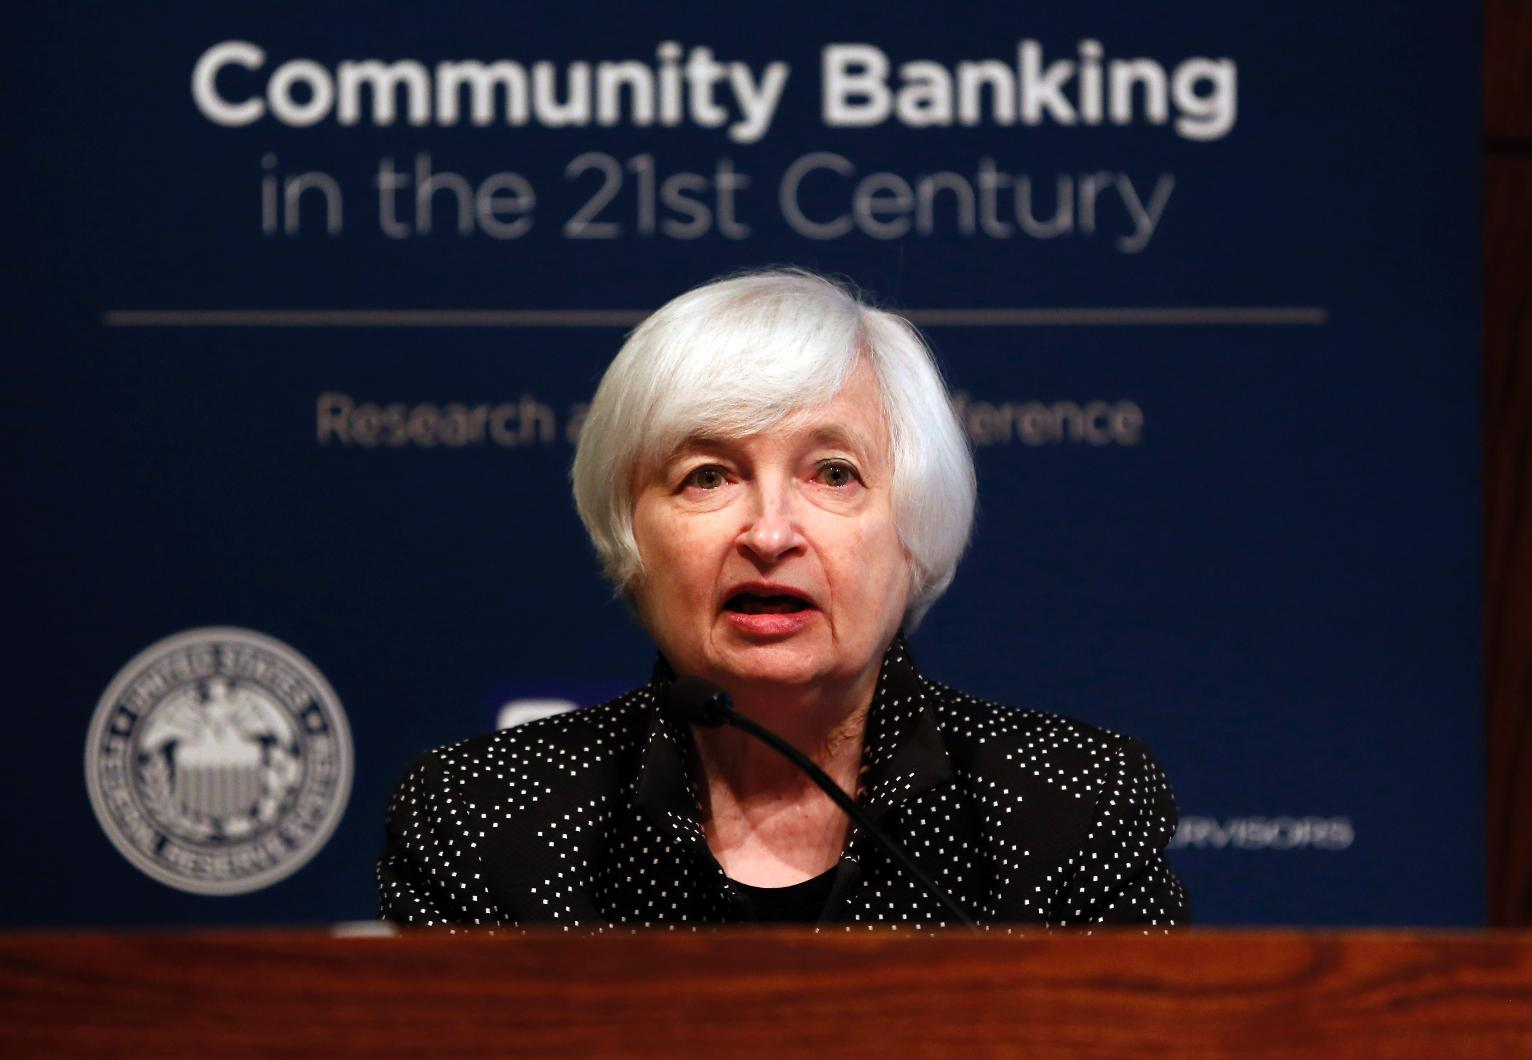 Yellen globalization makes higher education increasingly important wall street journal - File In This Sept 30 2015 File Photo Federal Reserve Chair Janet